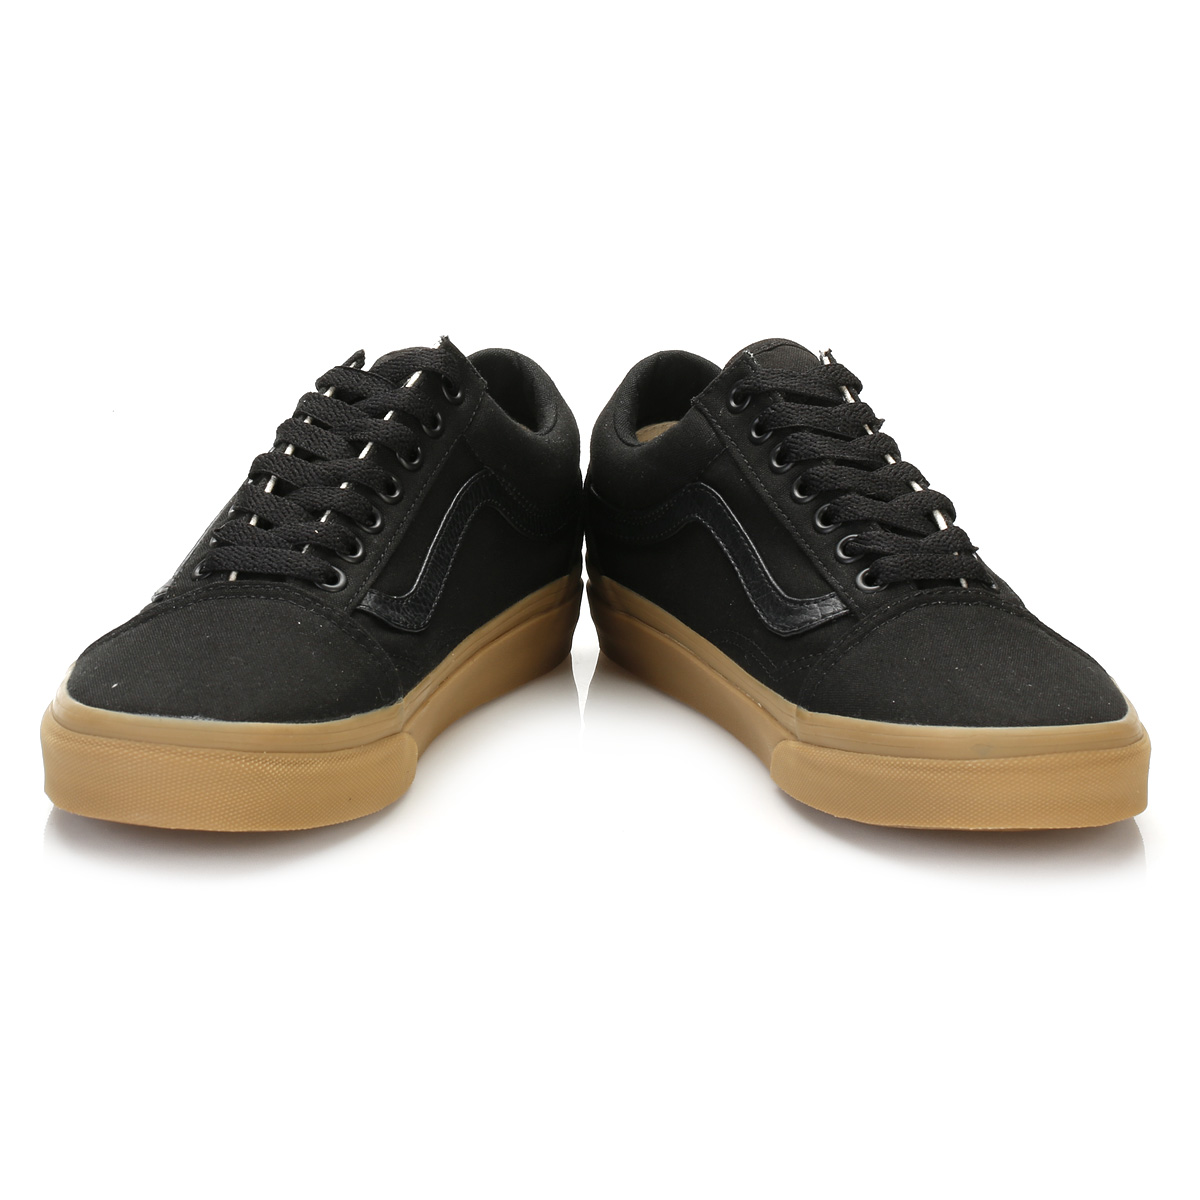 Vans Mens Trainers Black Light Gum Old Skool Lace Up Sport